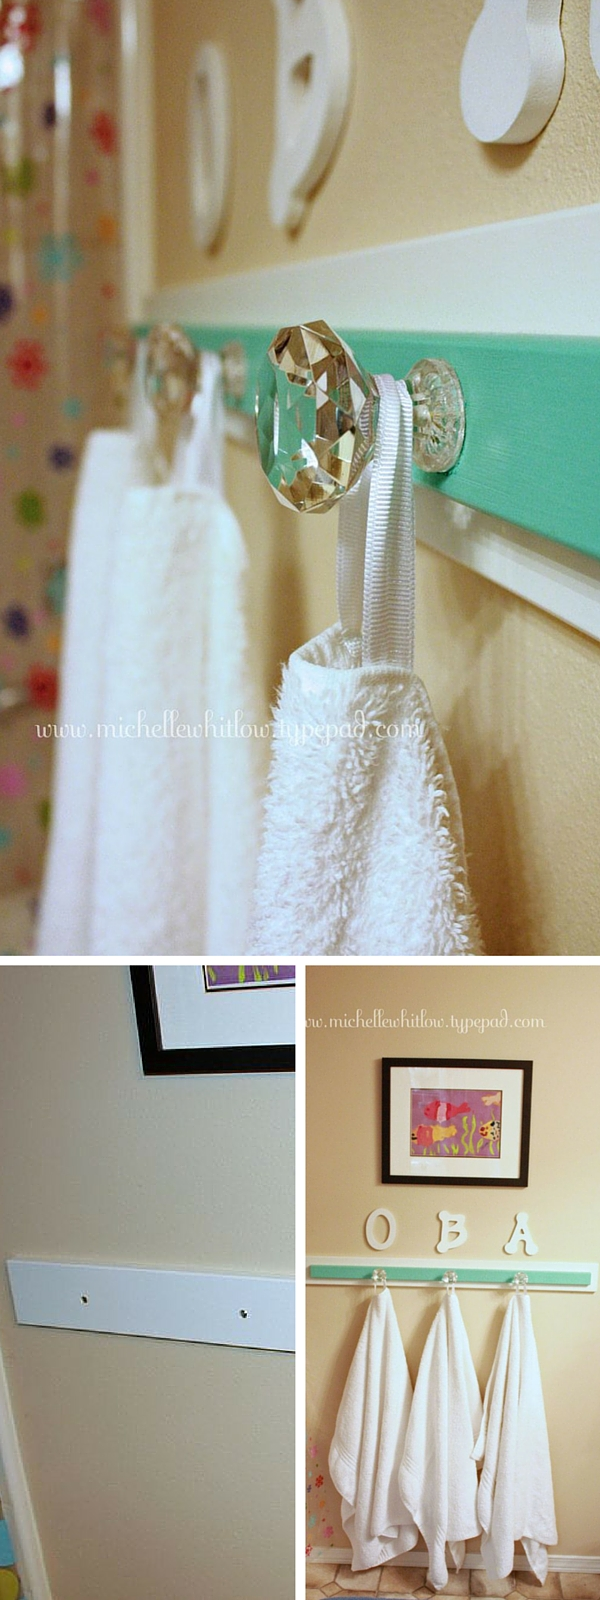 Check out this easy idea on how to make #DIY vintage towel hooks for bathroom decor #homedecor #apartments #budget #budget